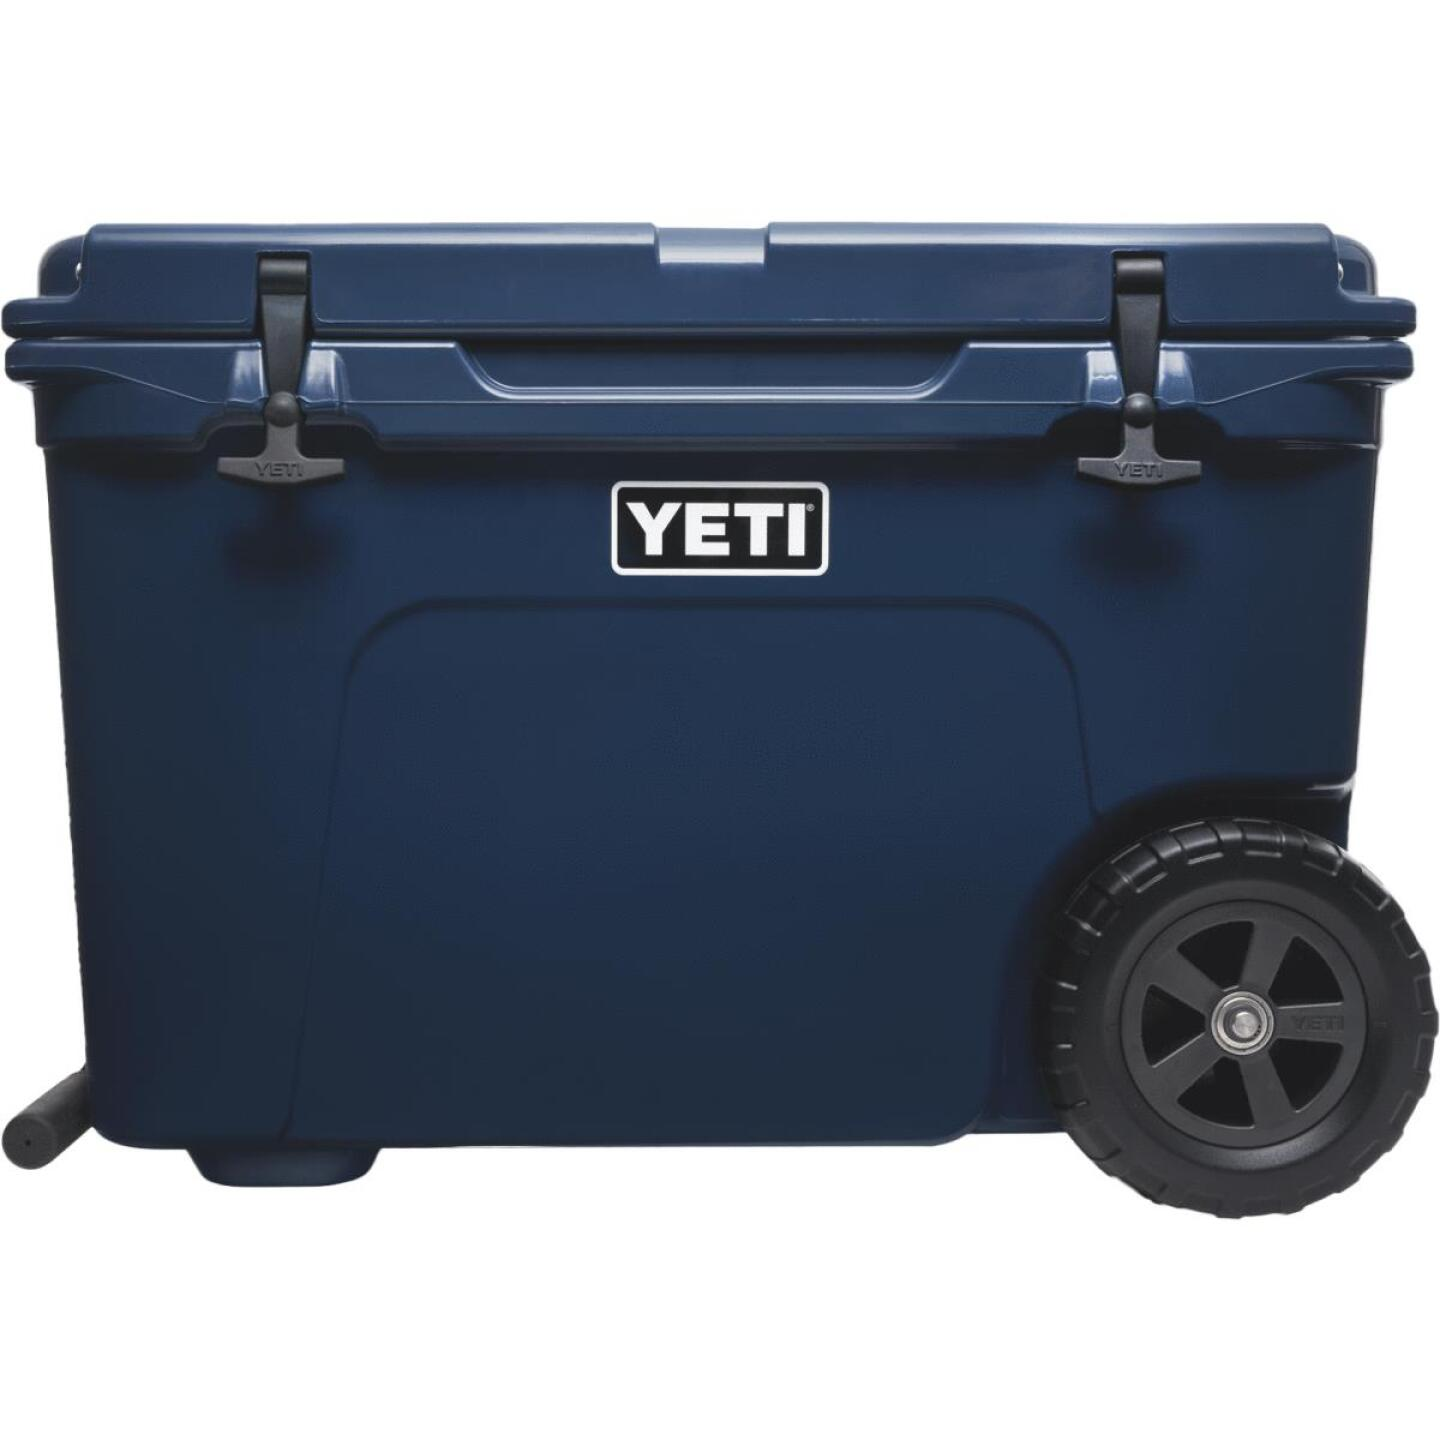 Yeti Tundra Haul 45-Can 2-Wheeled Cooler, Navy Image 1